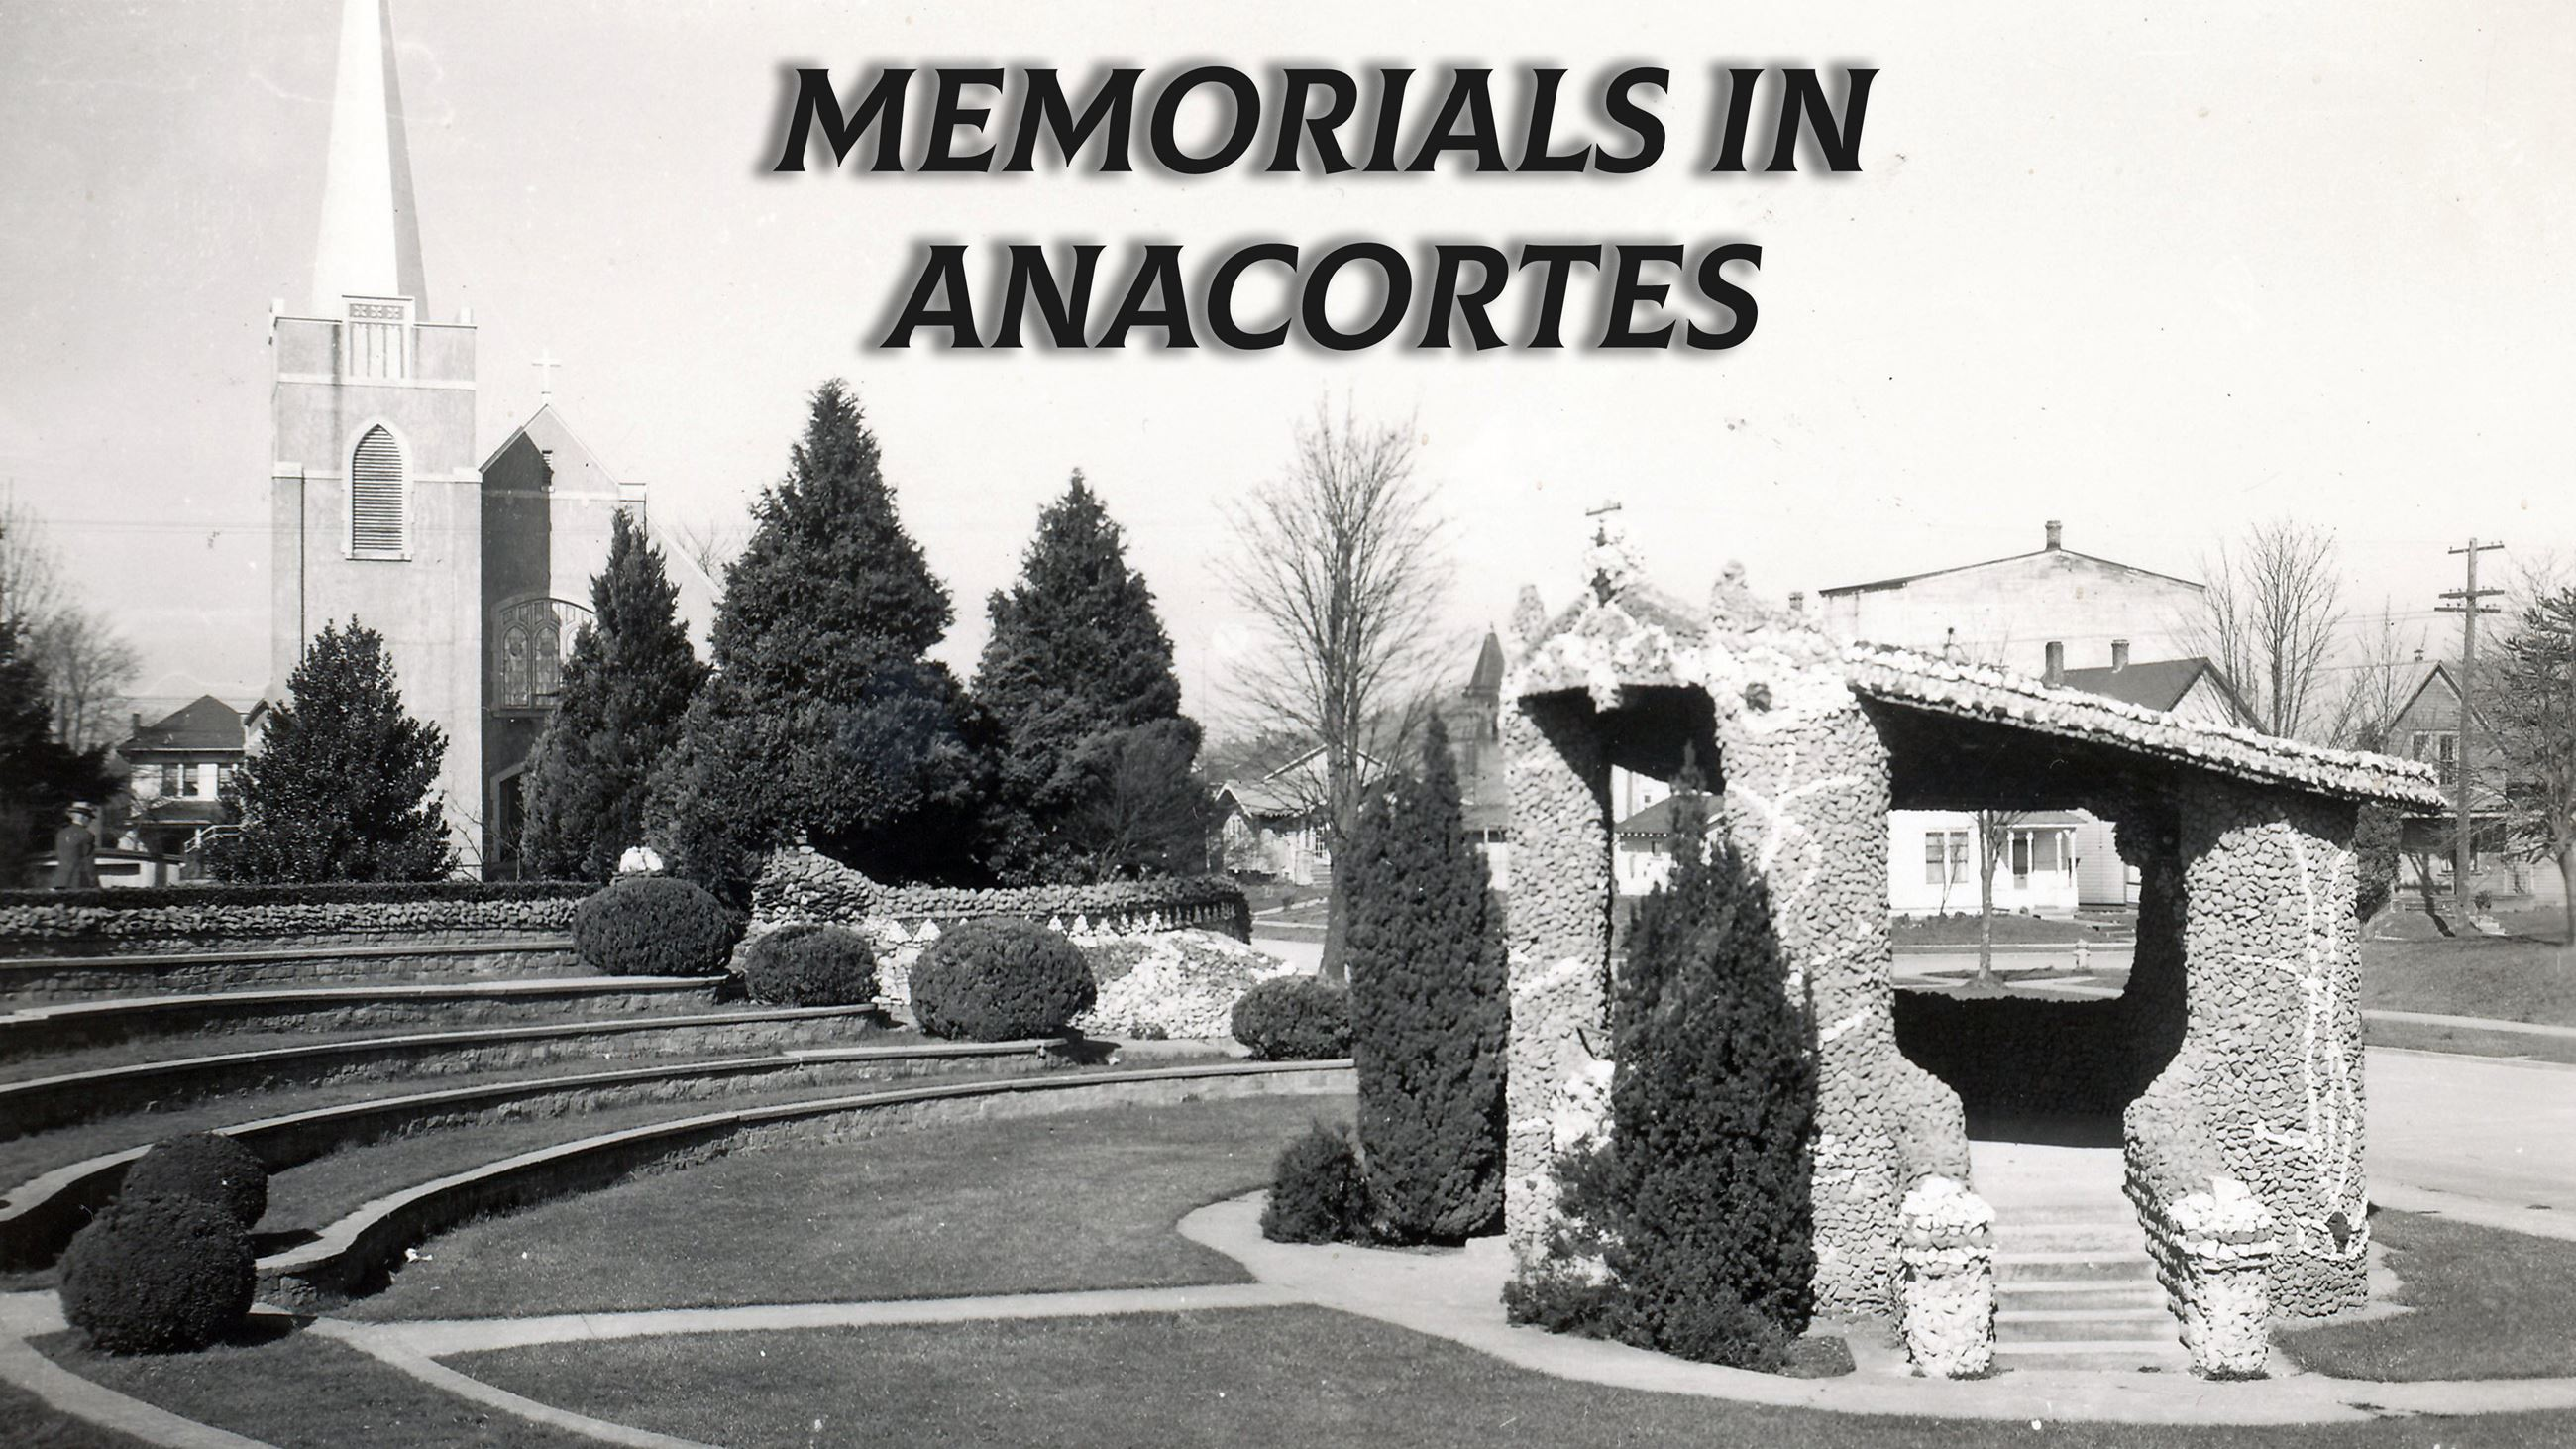 Memorials in Anacortes